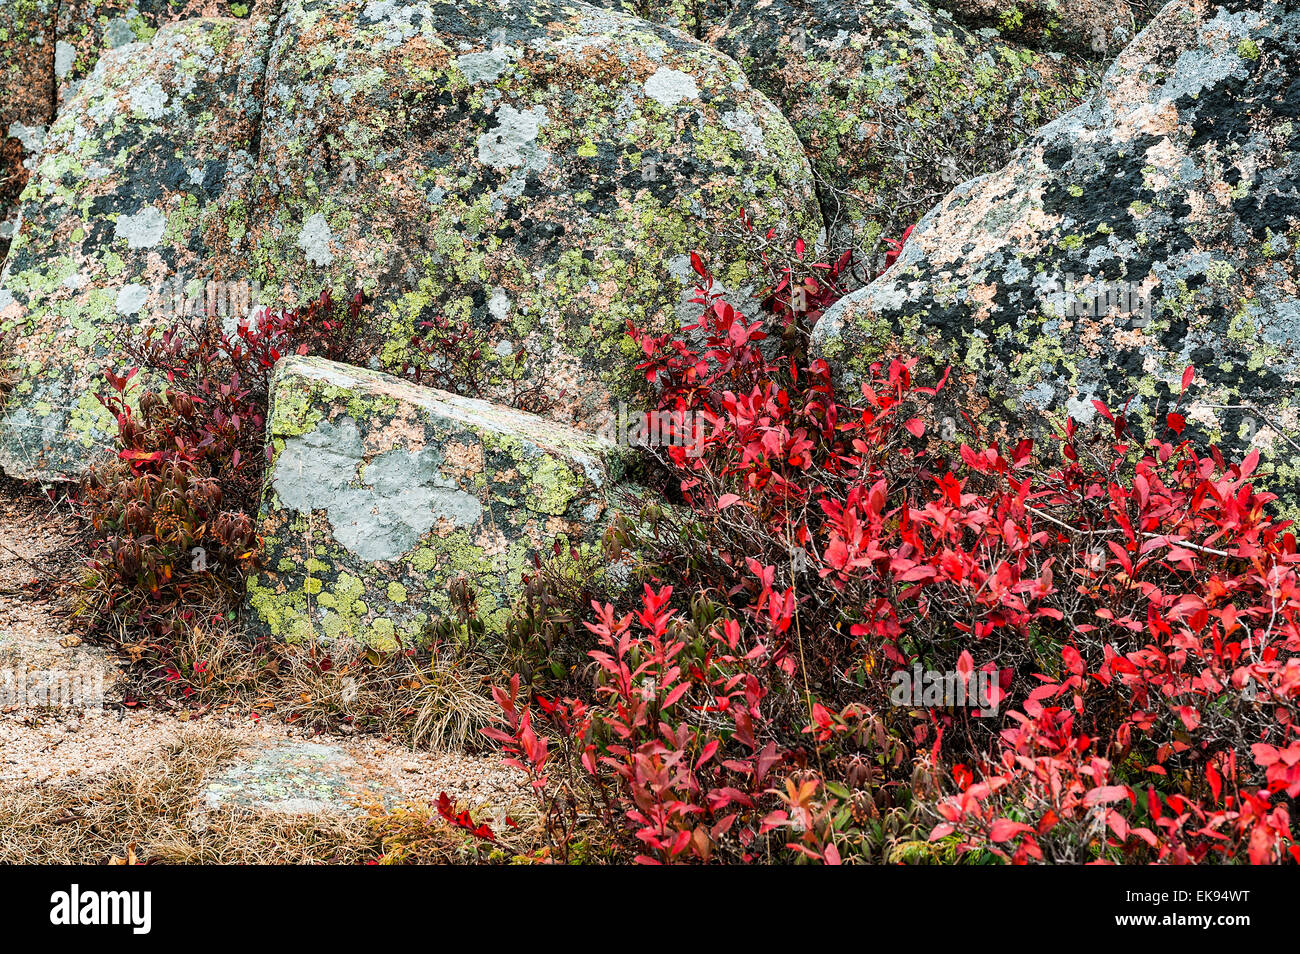 Lichen covered granite and groundcover foliage, Acadia National Park, Maine, USA - Stock Image